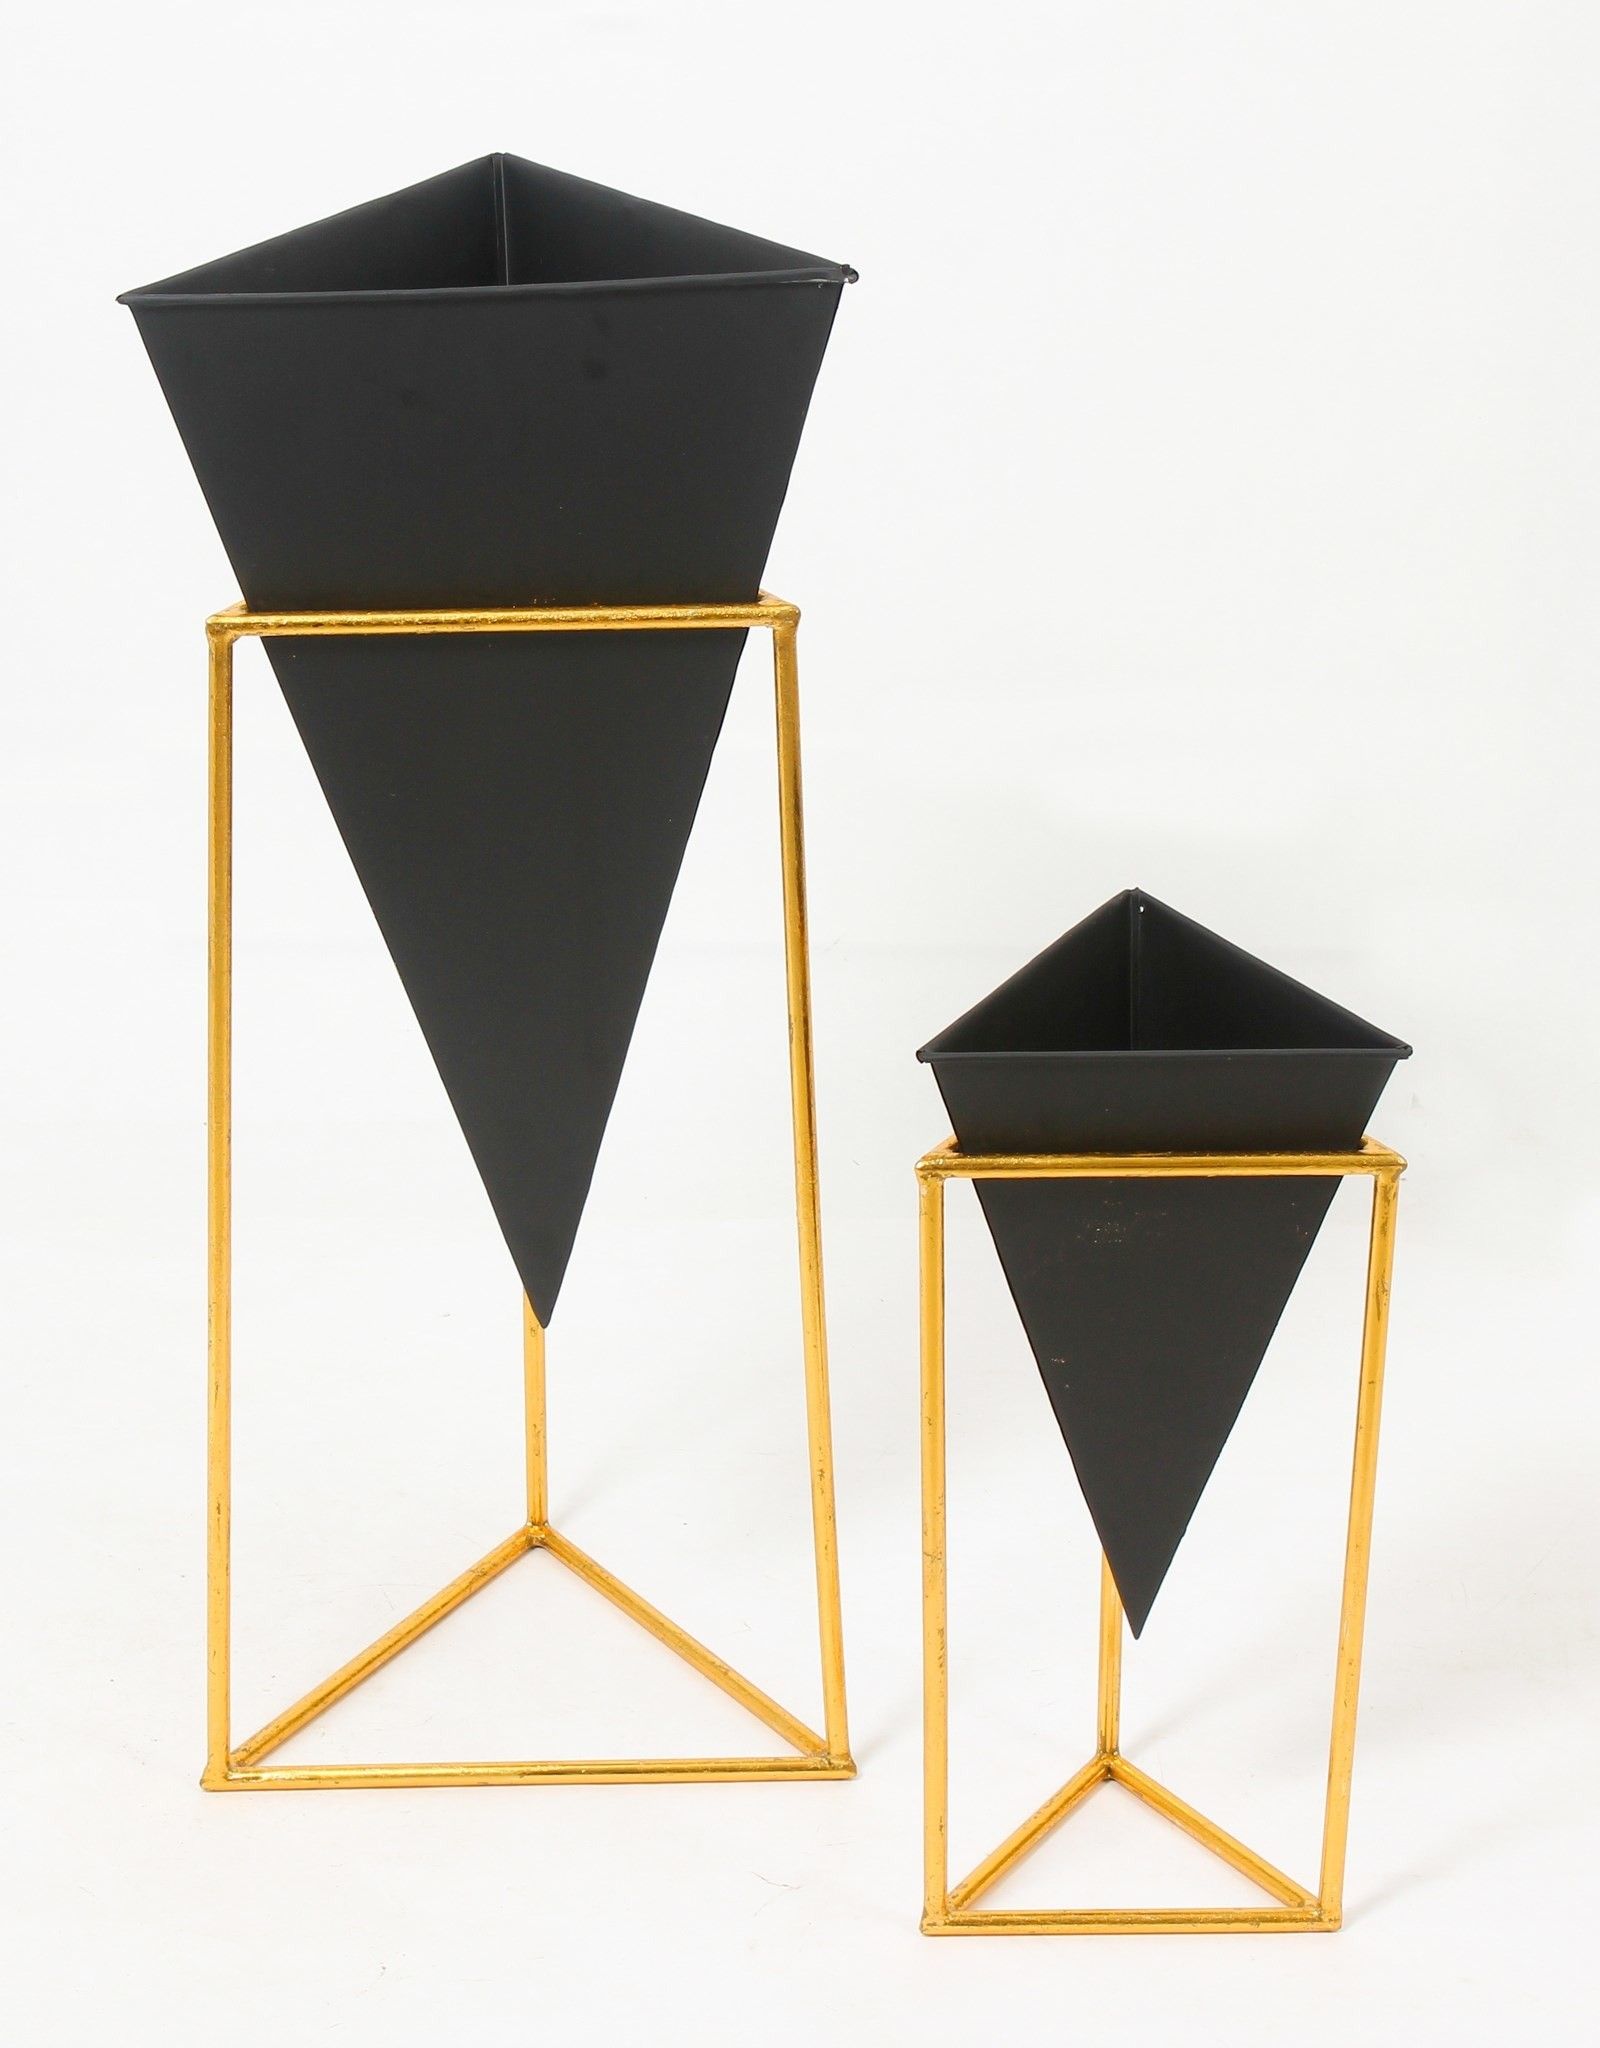 Planter CJ Black Triangle Pot With Stand Large